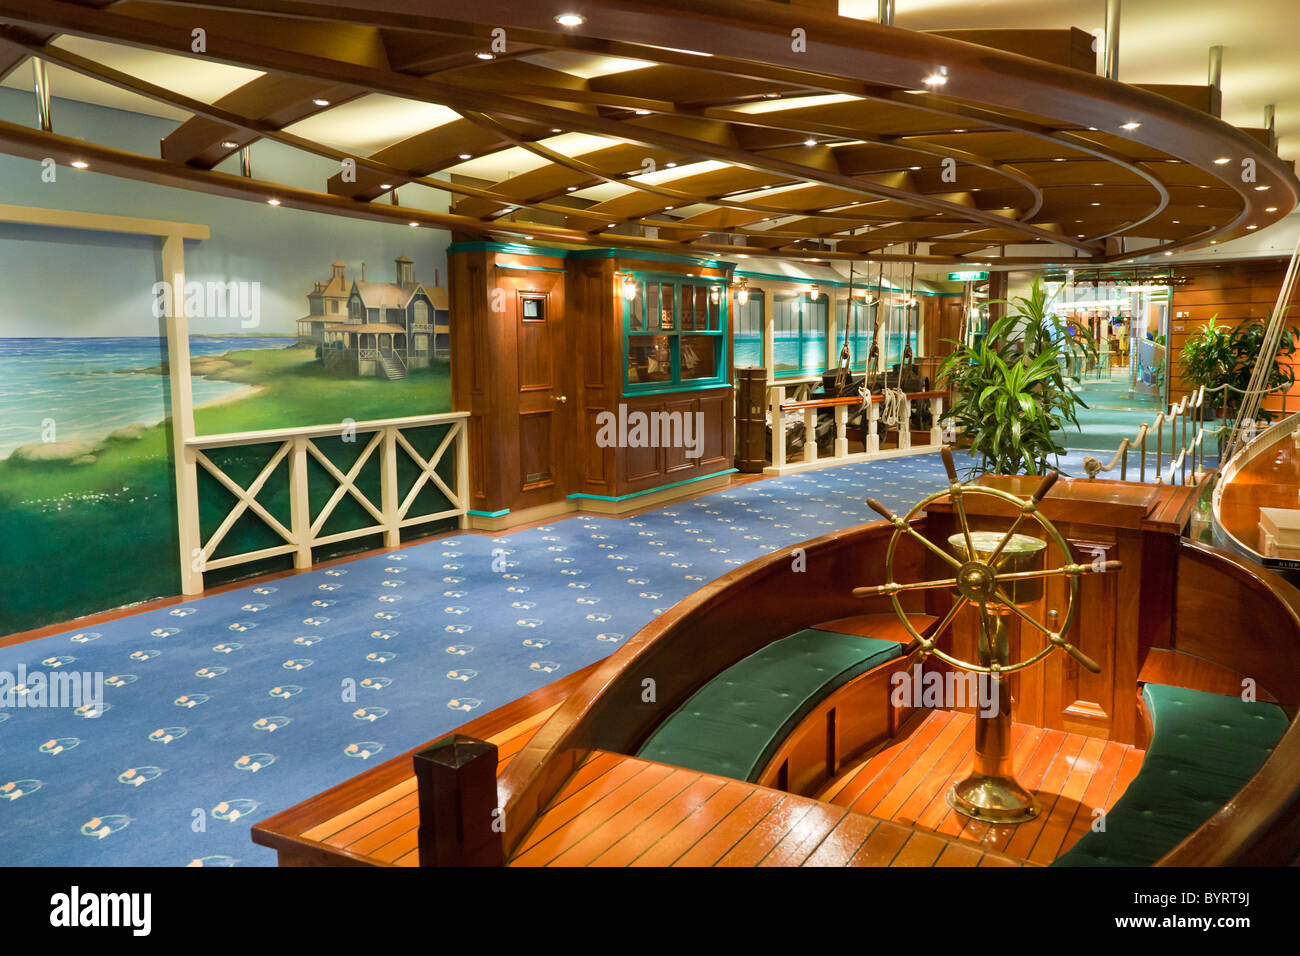 Interior of hallway in Royal Caribbean's Jewel of the Seas cruise ship. - Stock Image